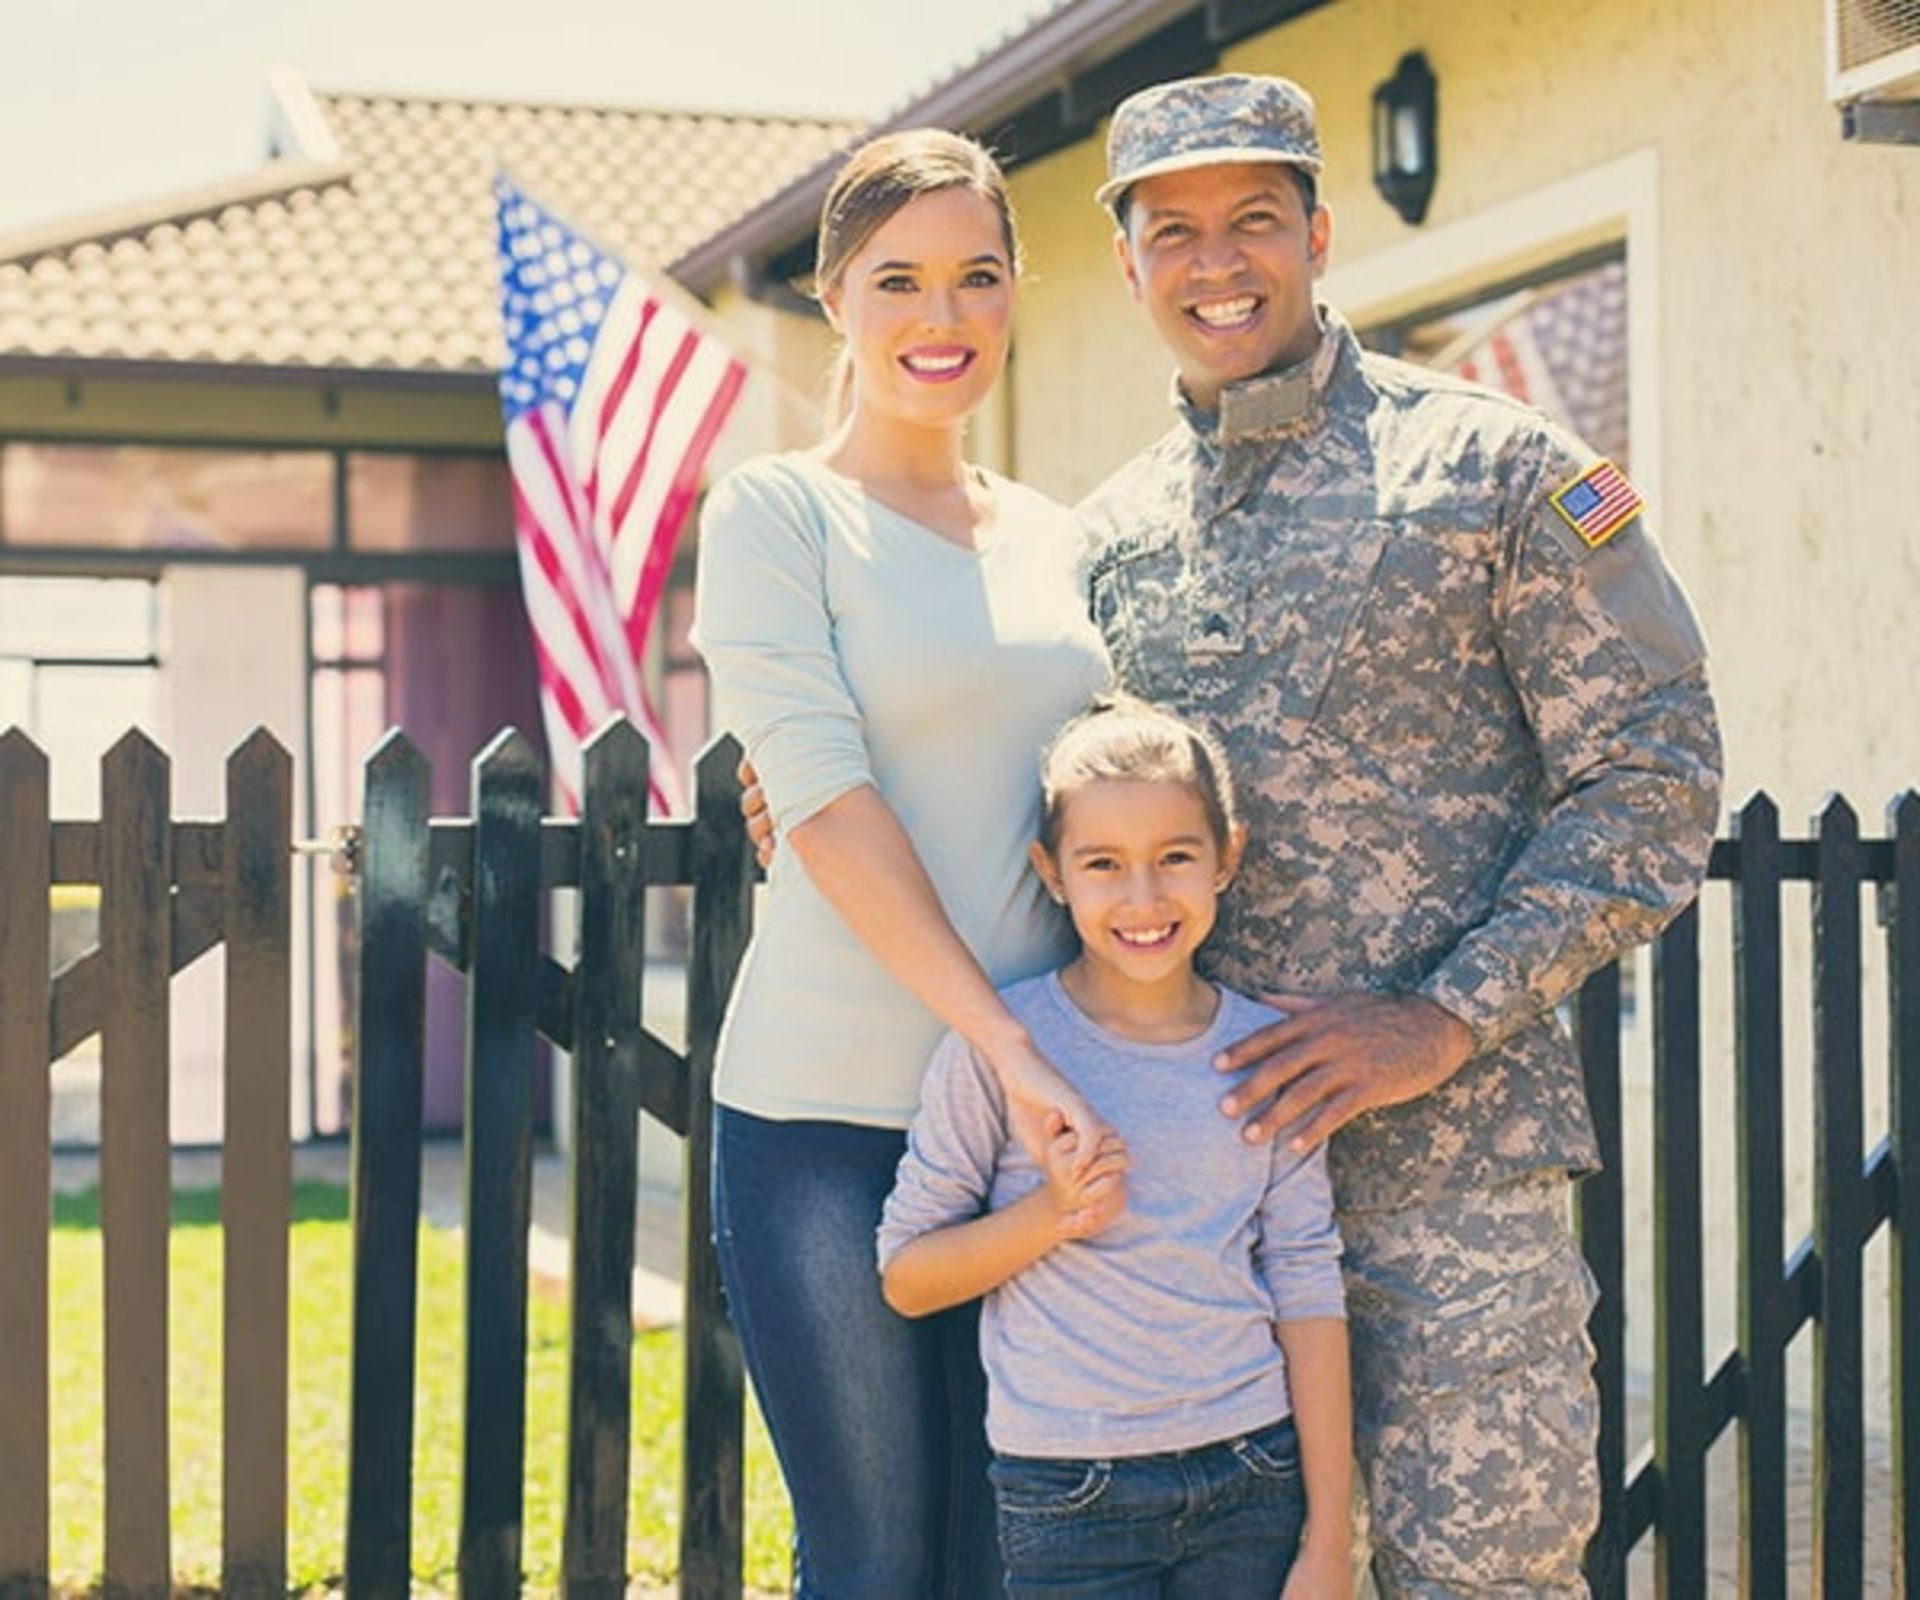 VA Loans by the Numbers